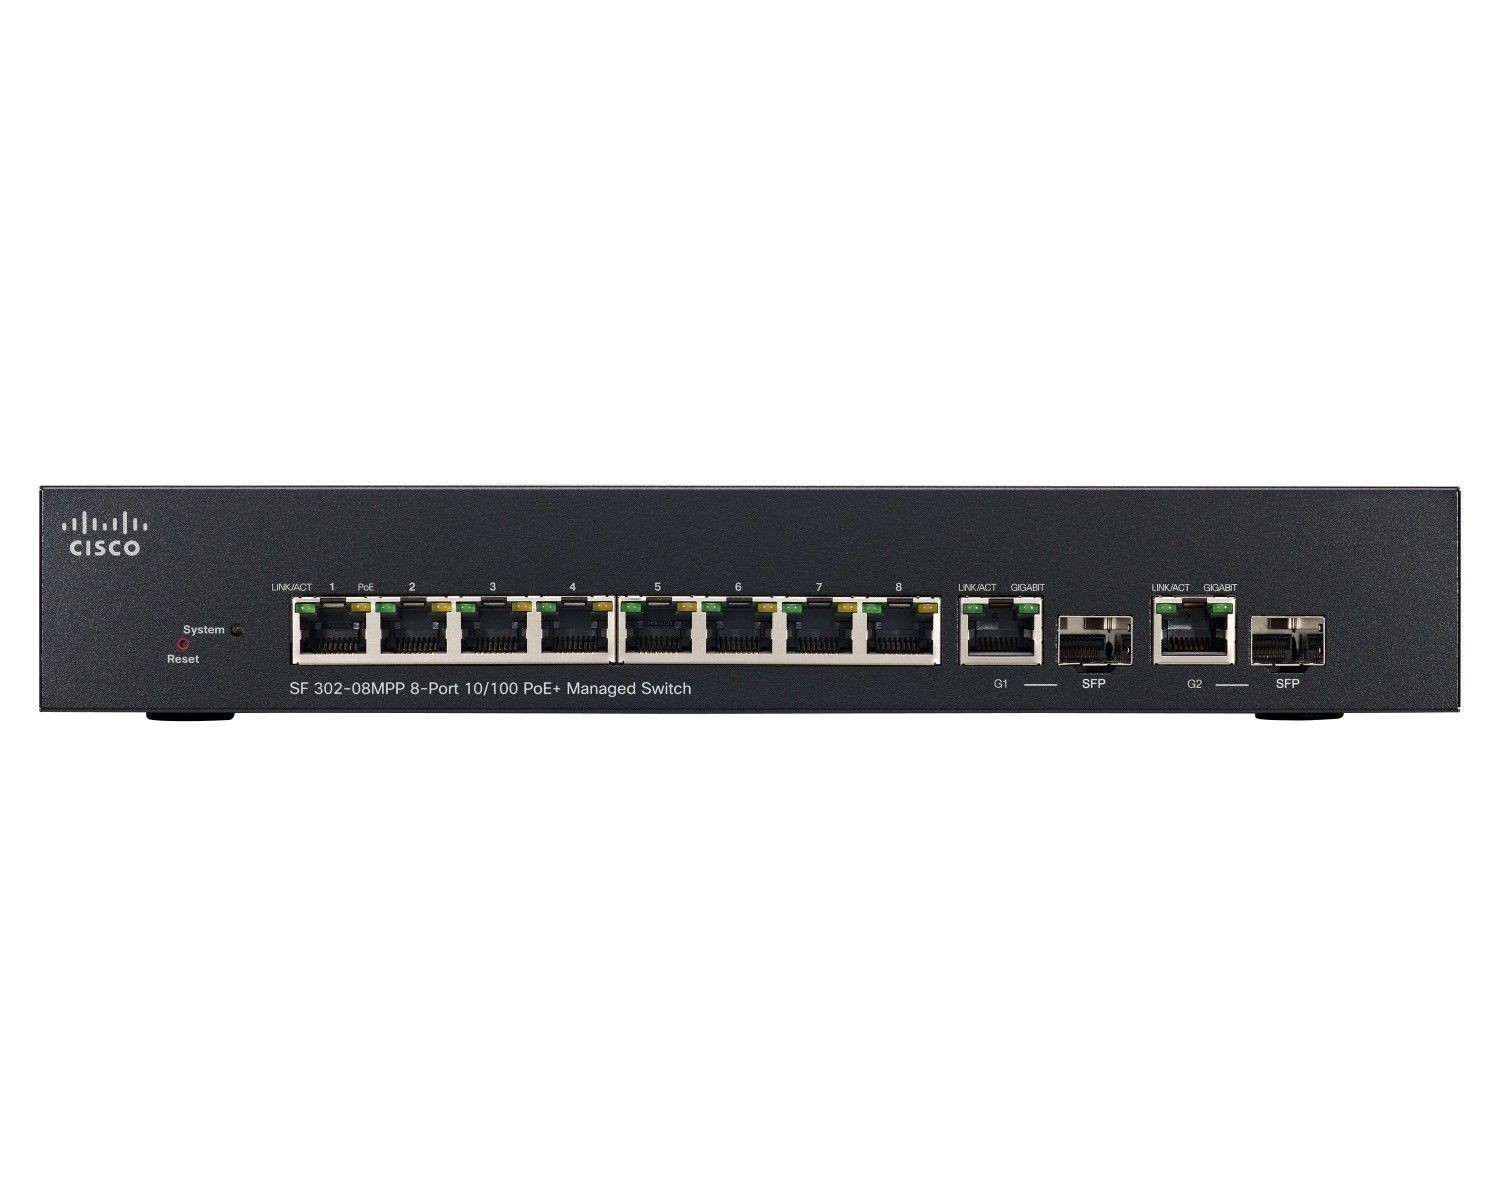 Cisco Systems Cisco SF302-08MPP 8-port 10/100 Max PoE+ Managed Switch